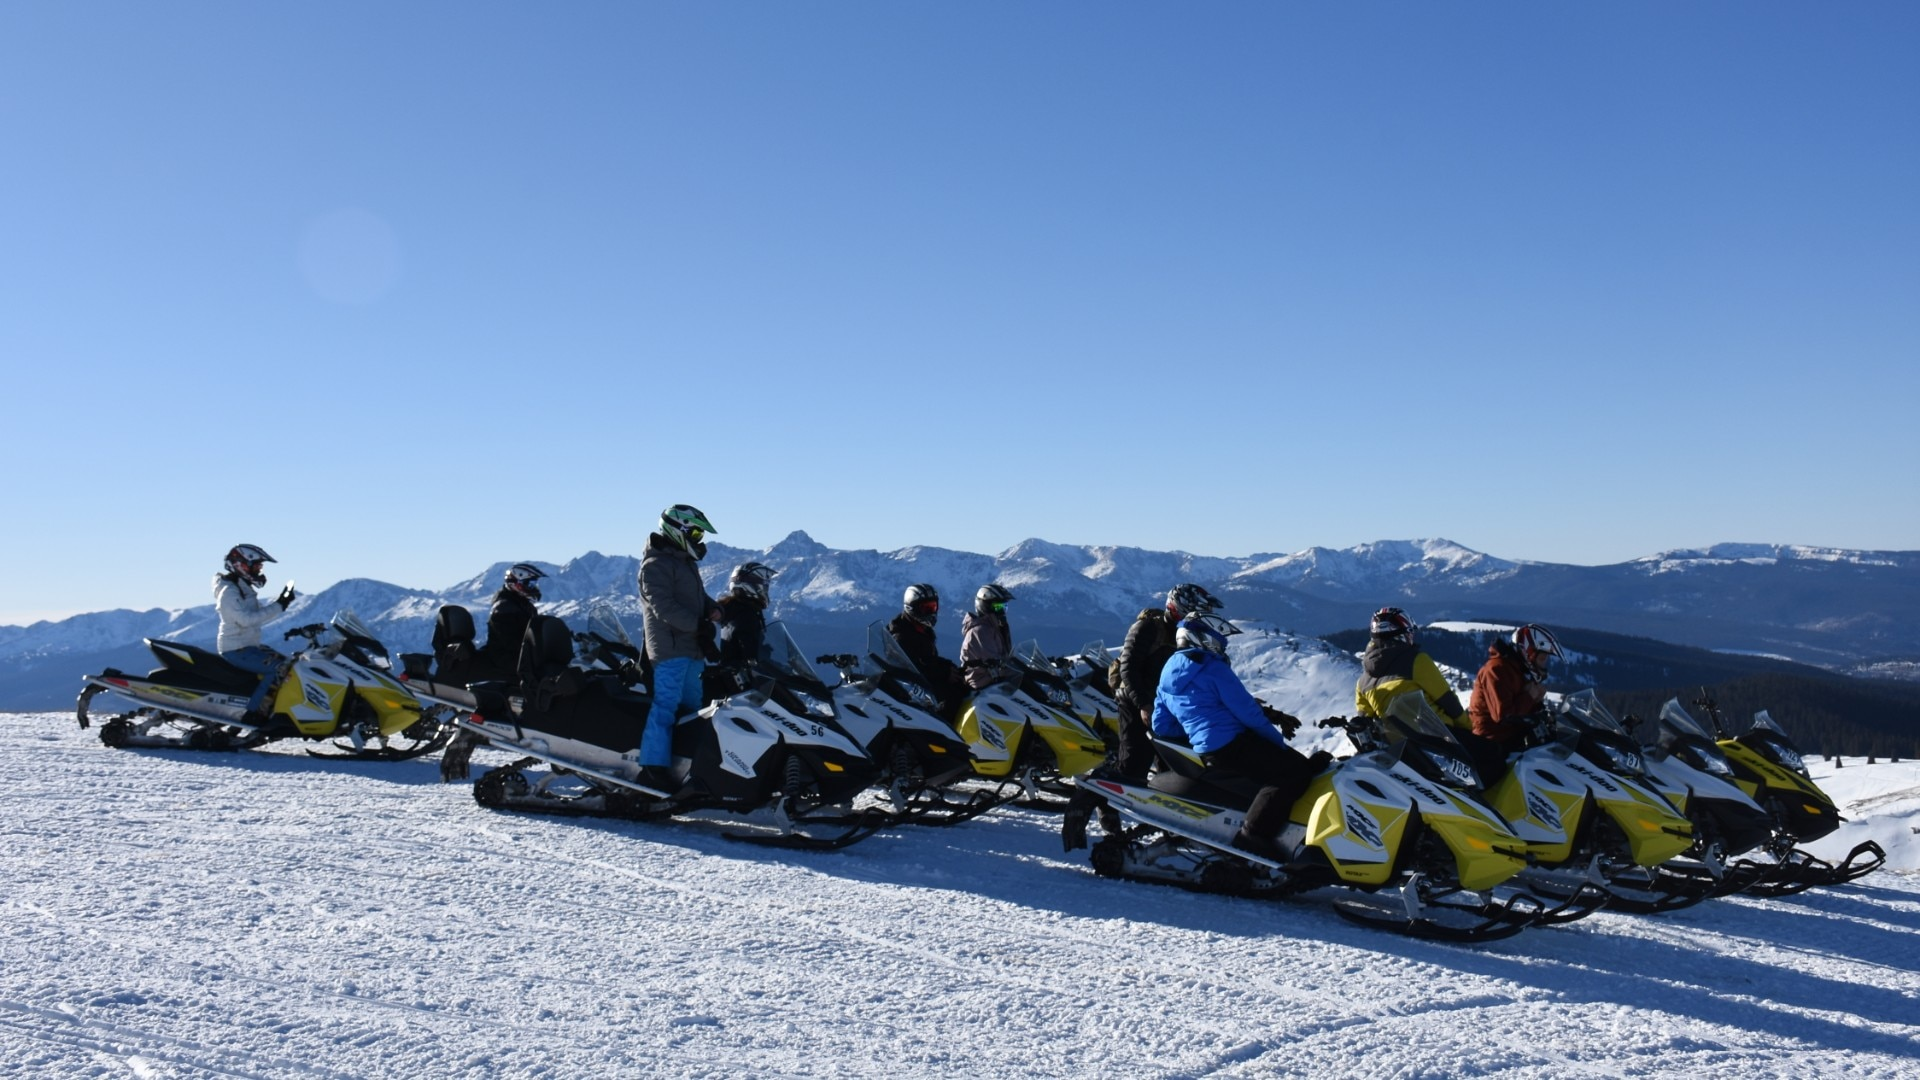 Group snowmobiling on top of the rockies